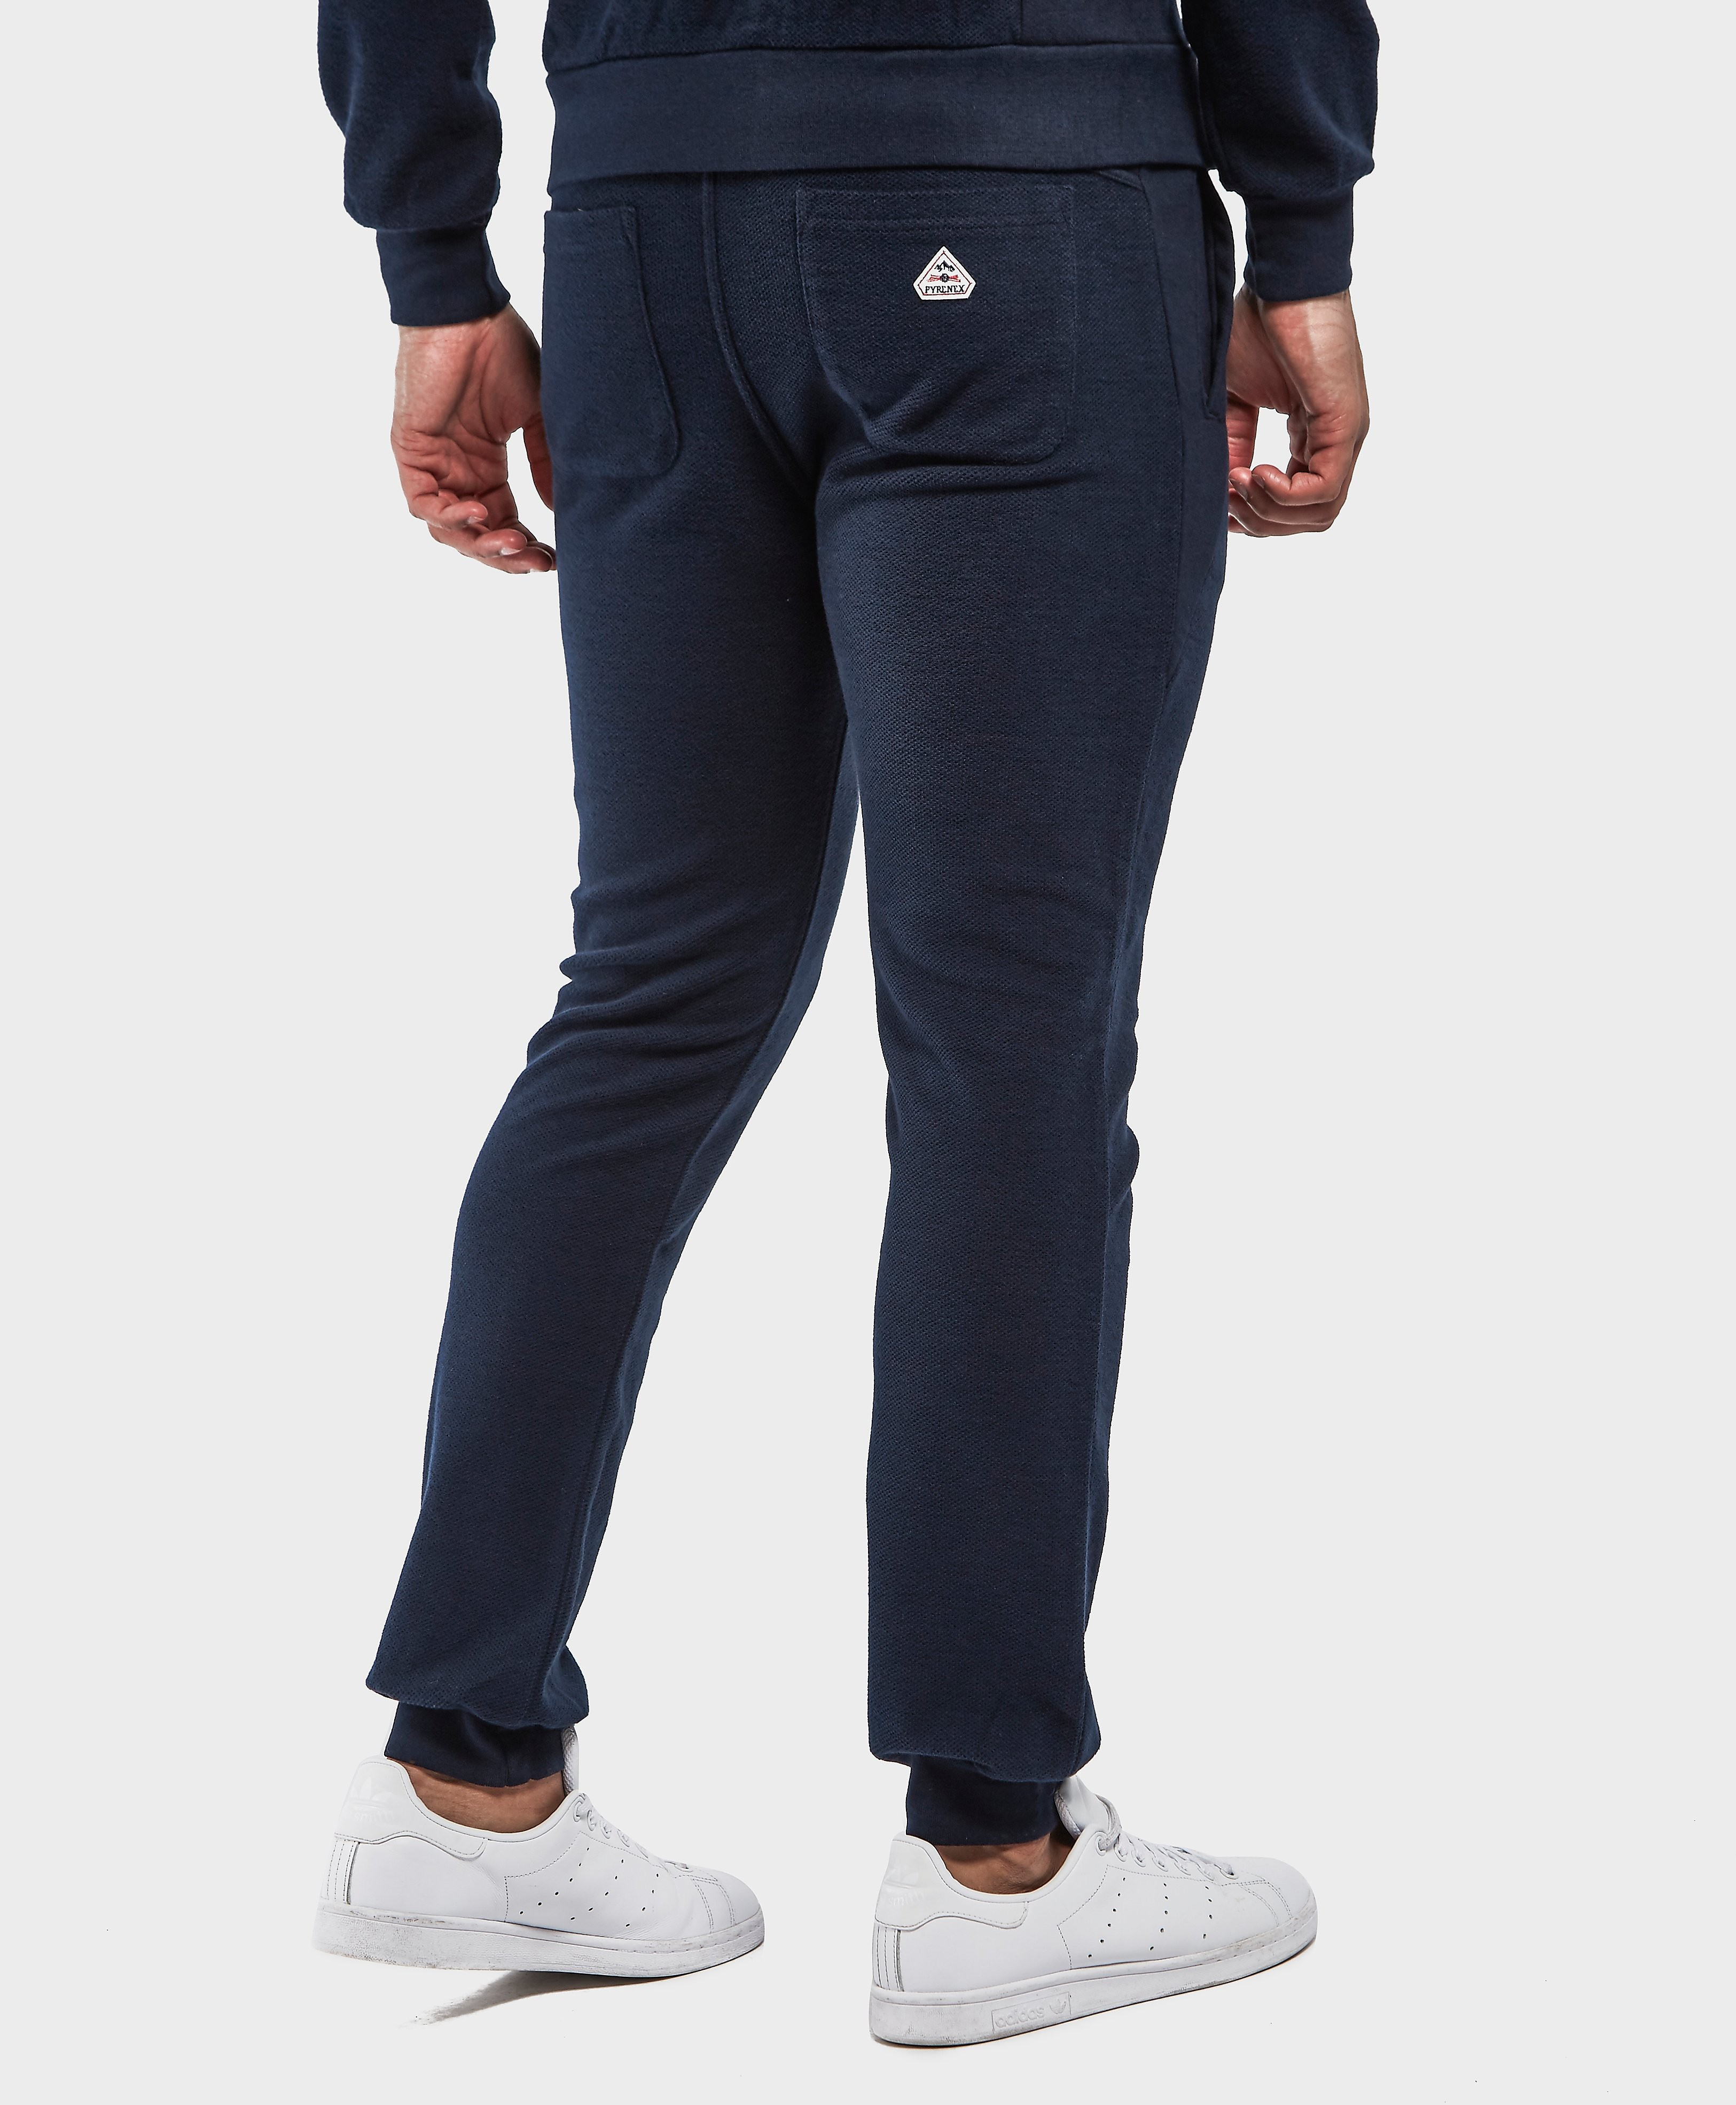 Pyrenex Alban Cuffed Track Pants